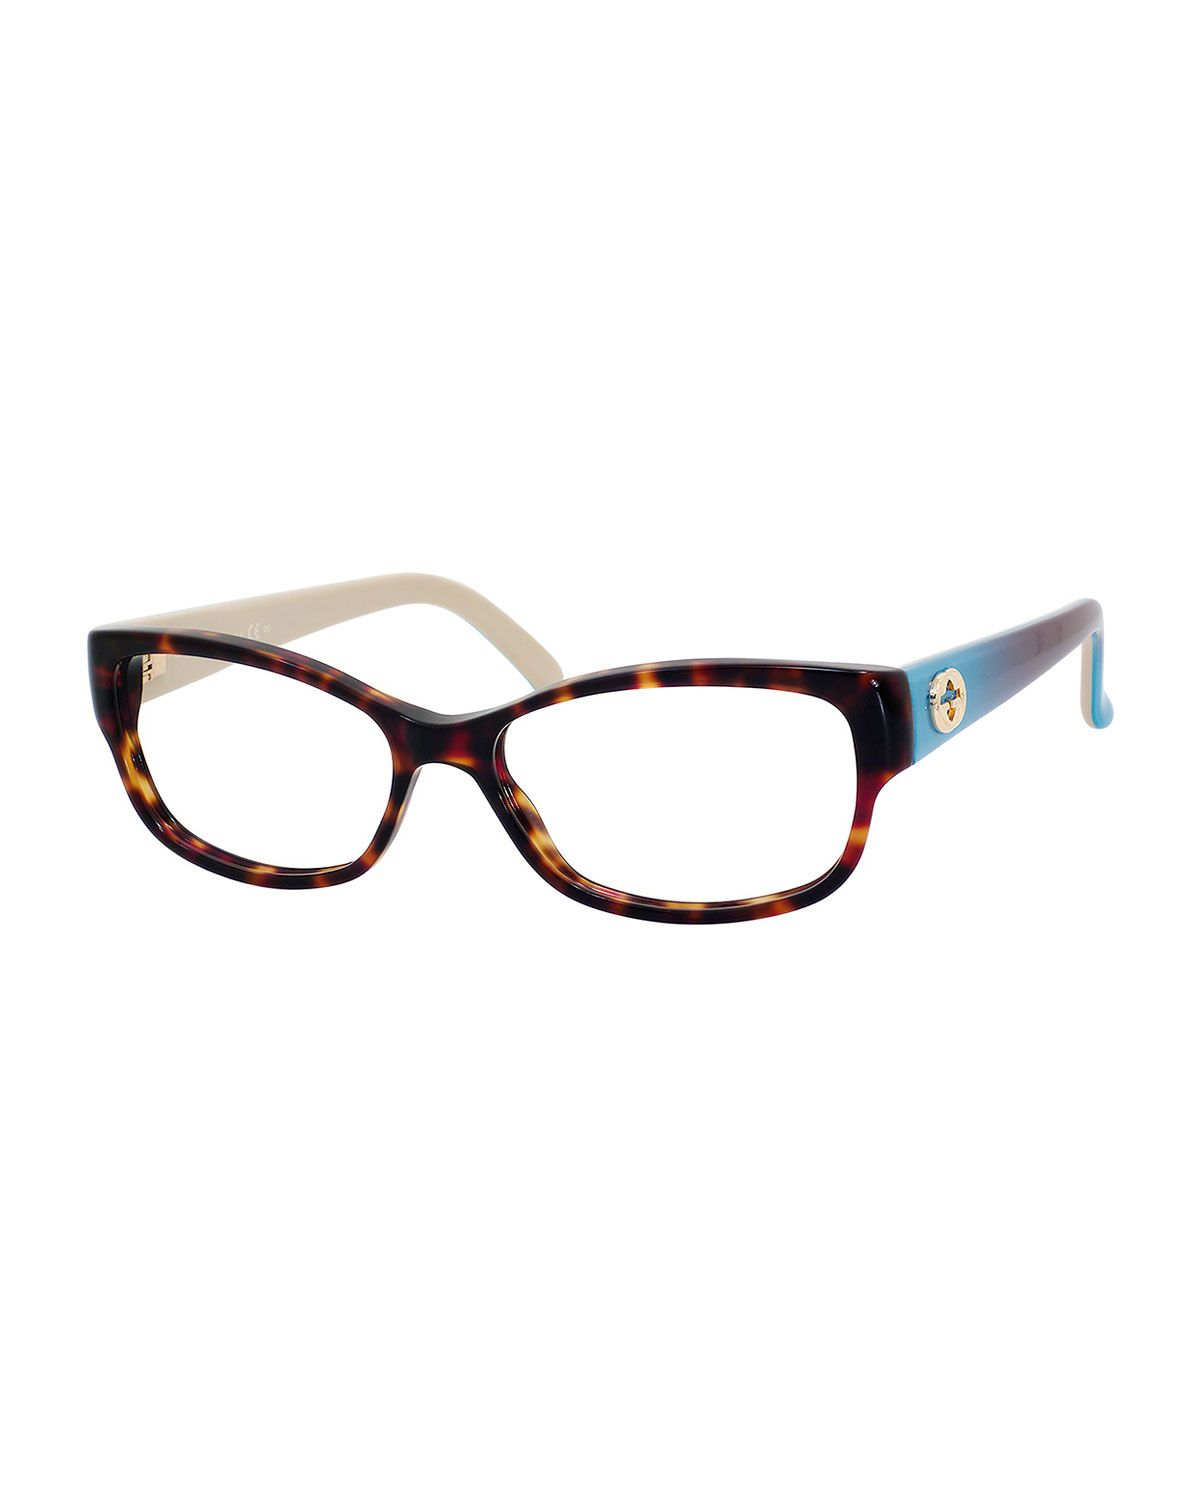 10d08846de0 Gucci Rectangle Fashion Glasses with Ombre Arms